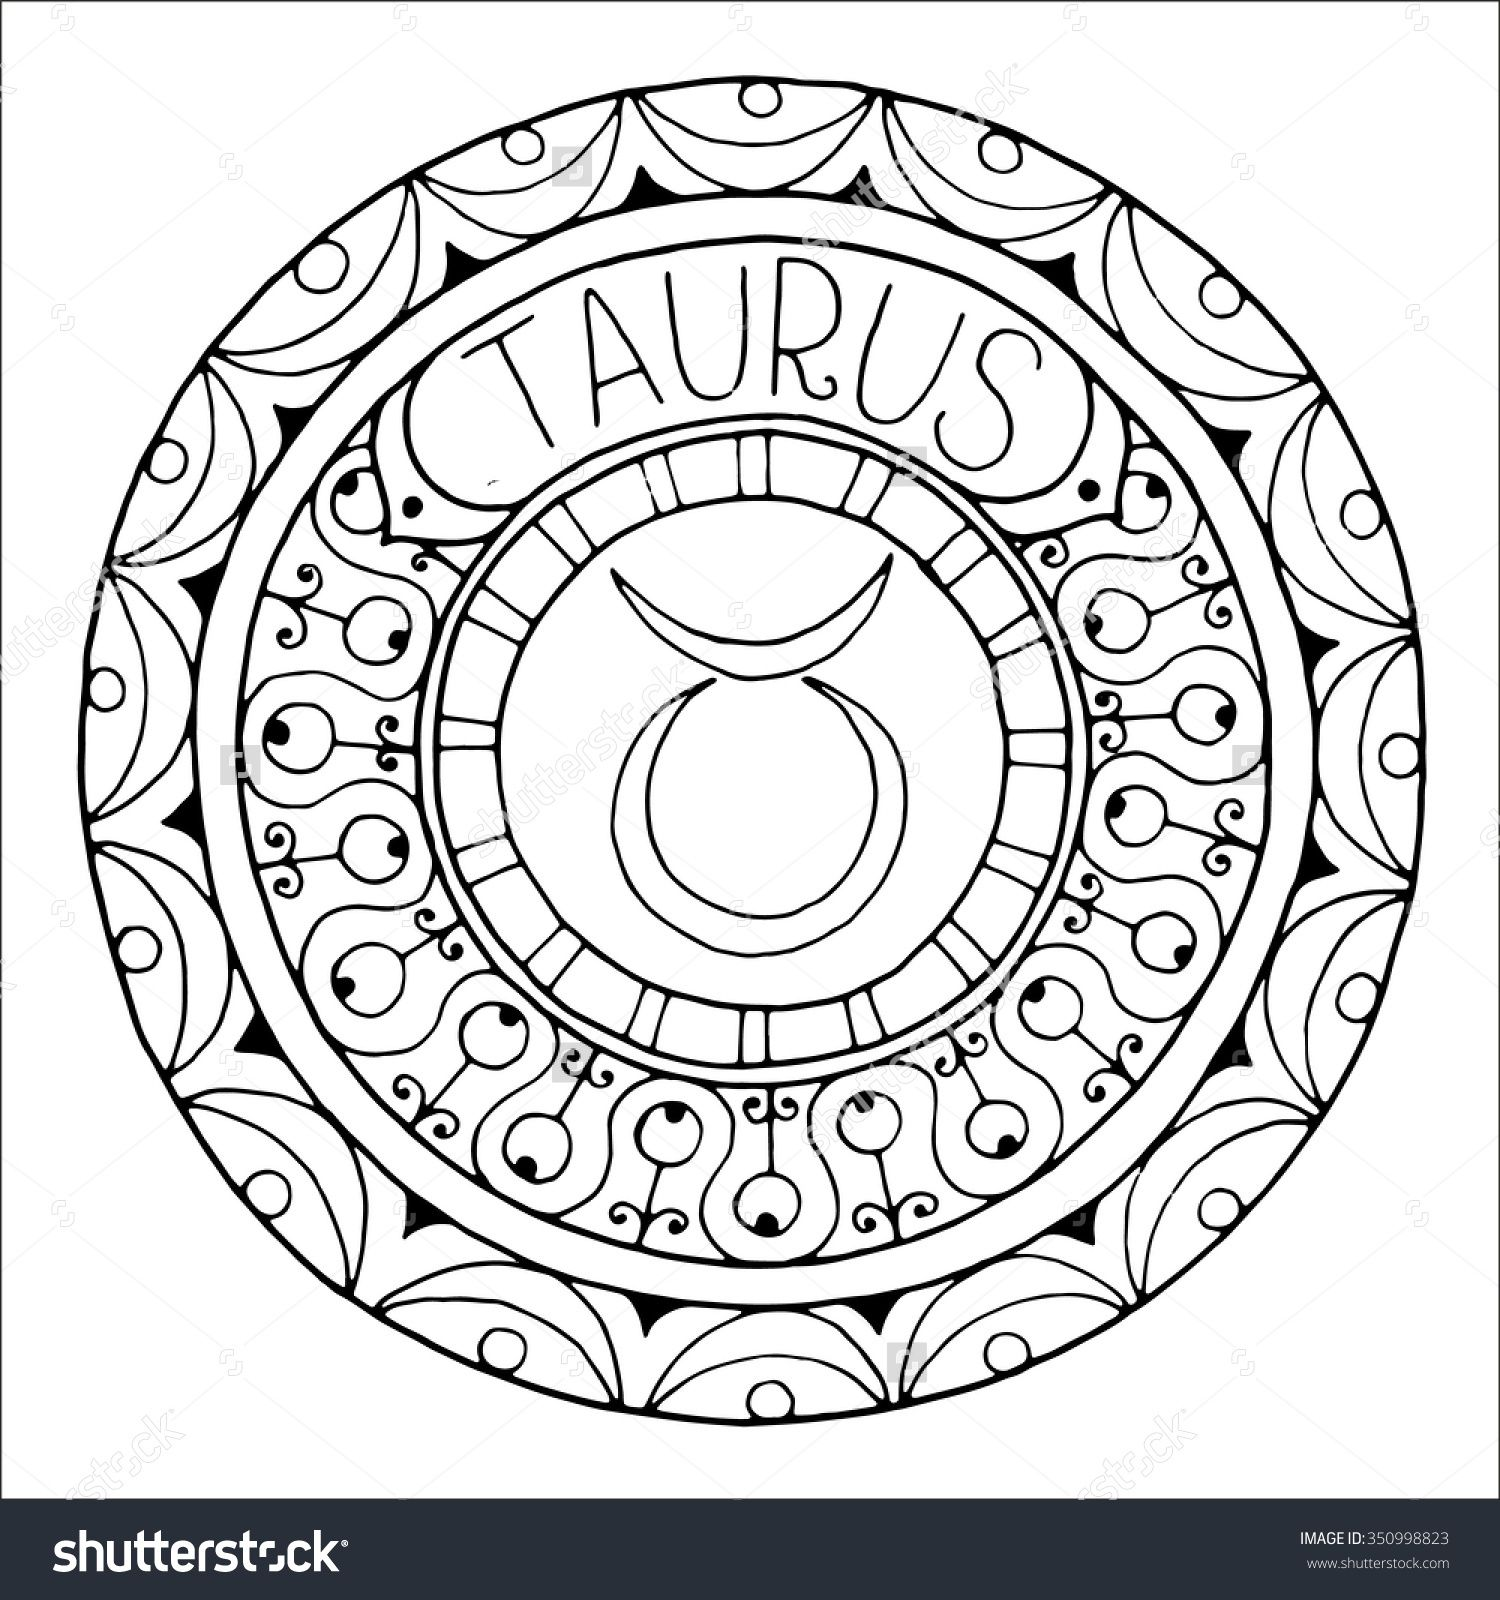 cfc47fcf7 Astrology Adult Coloring Book